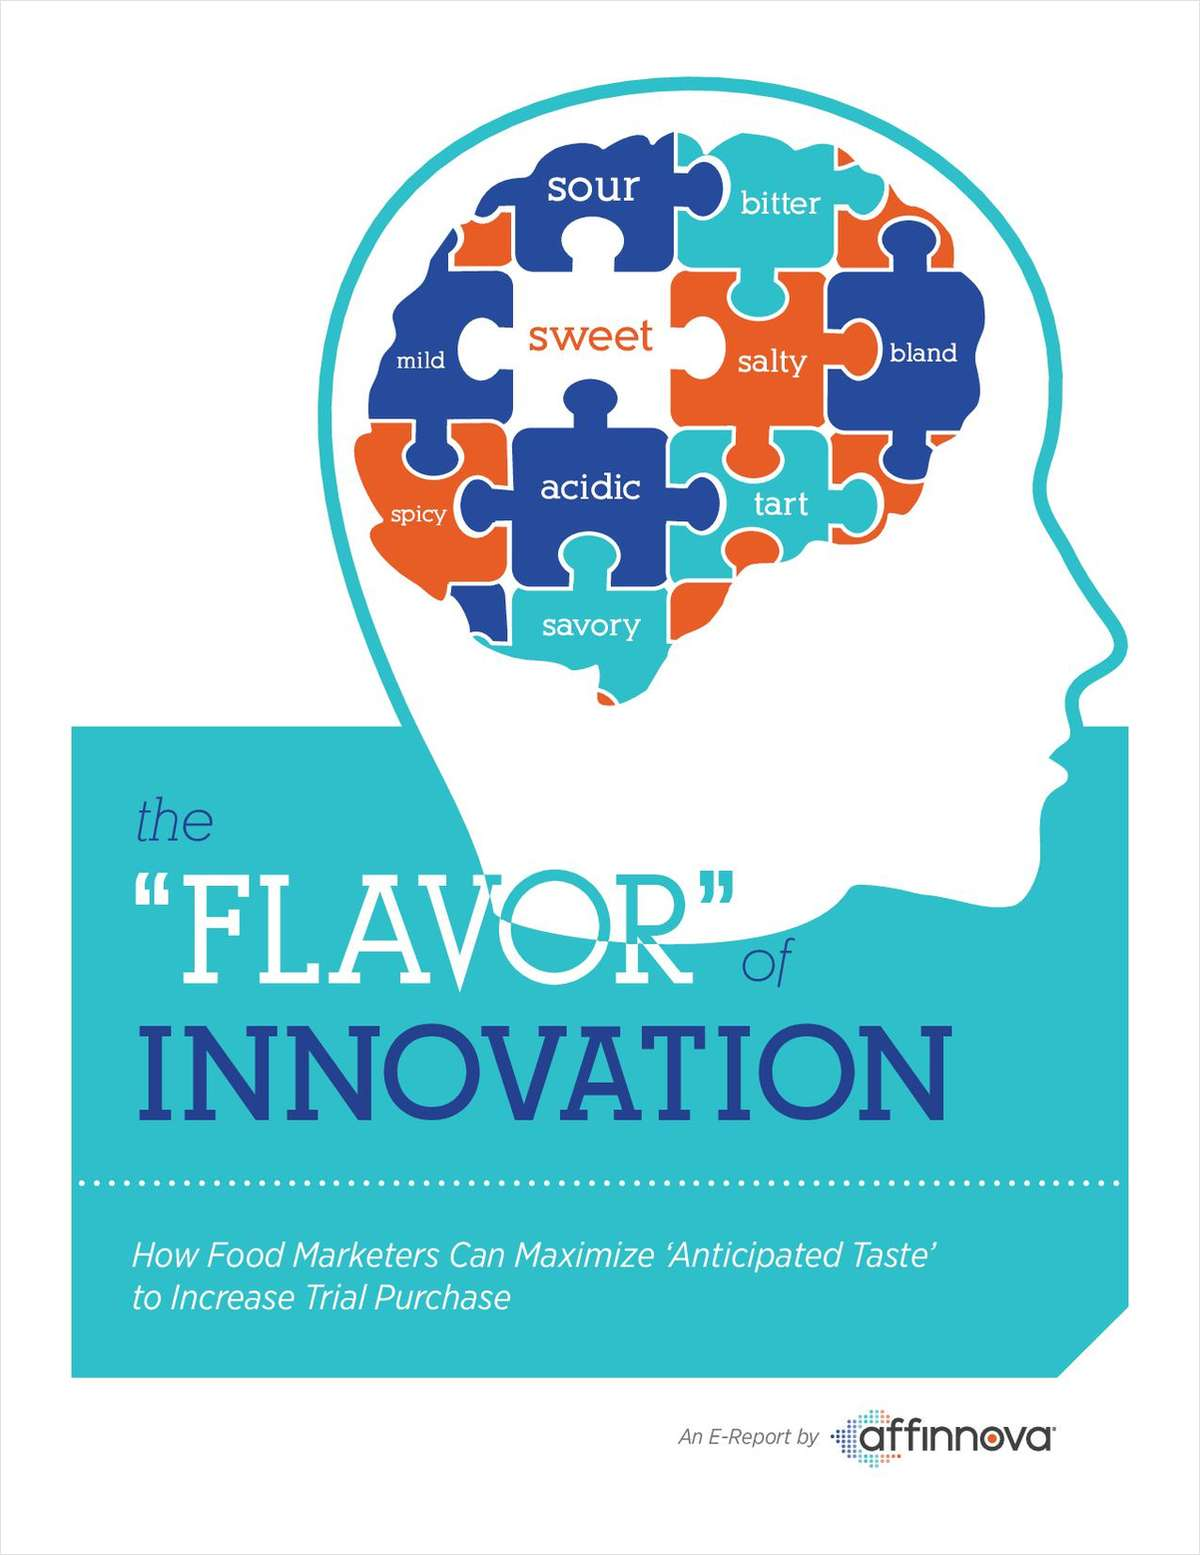 The Flavor of Innovation: How Food Marketers Can Drive ?Anticipated Taste? to Increase Trial Purchases